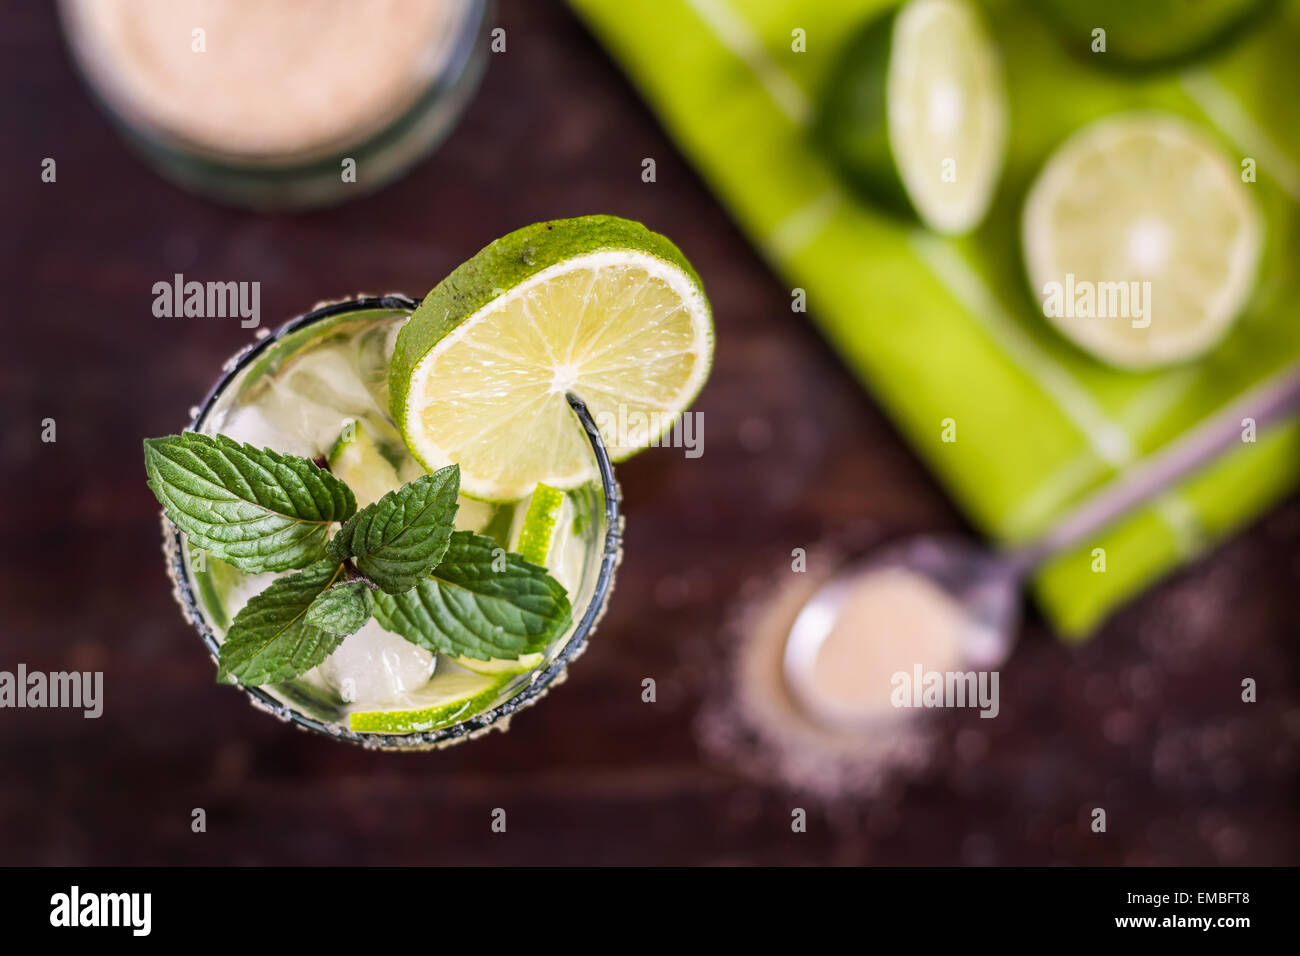 Mojito Lime Alcoholic Drink Cocktail on Wooden Table Overhead - Stock Image